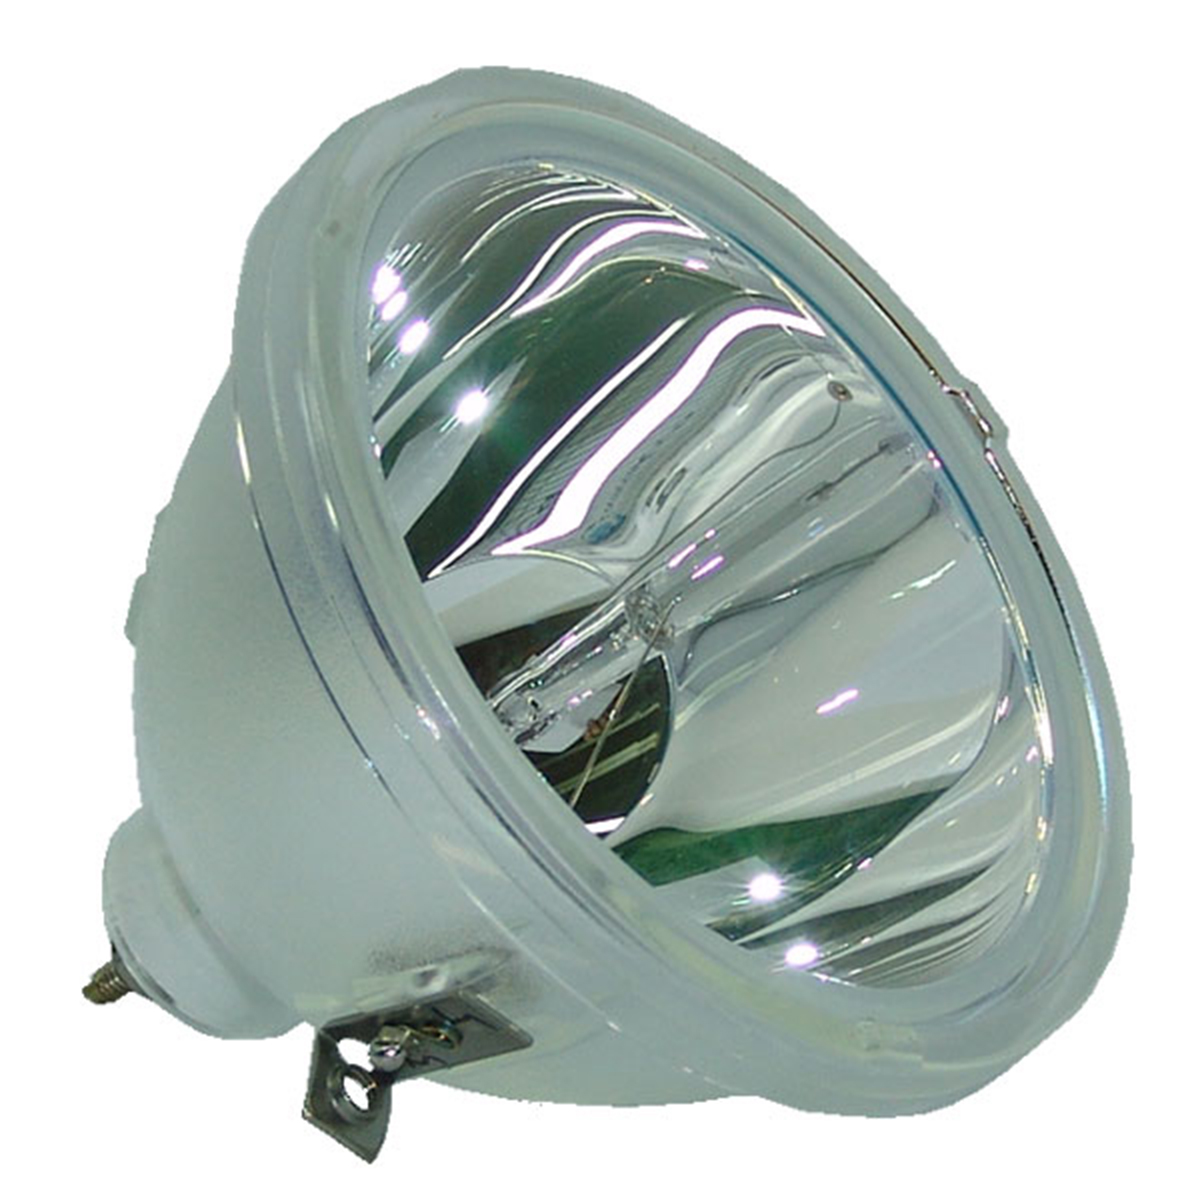 10001b replacement bulb for samsung plh403w2 tv lamp rptv bulbs dlp. Black Bedroom Furniture Sets. Home Design Ideas